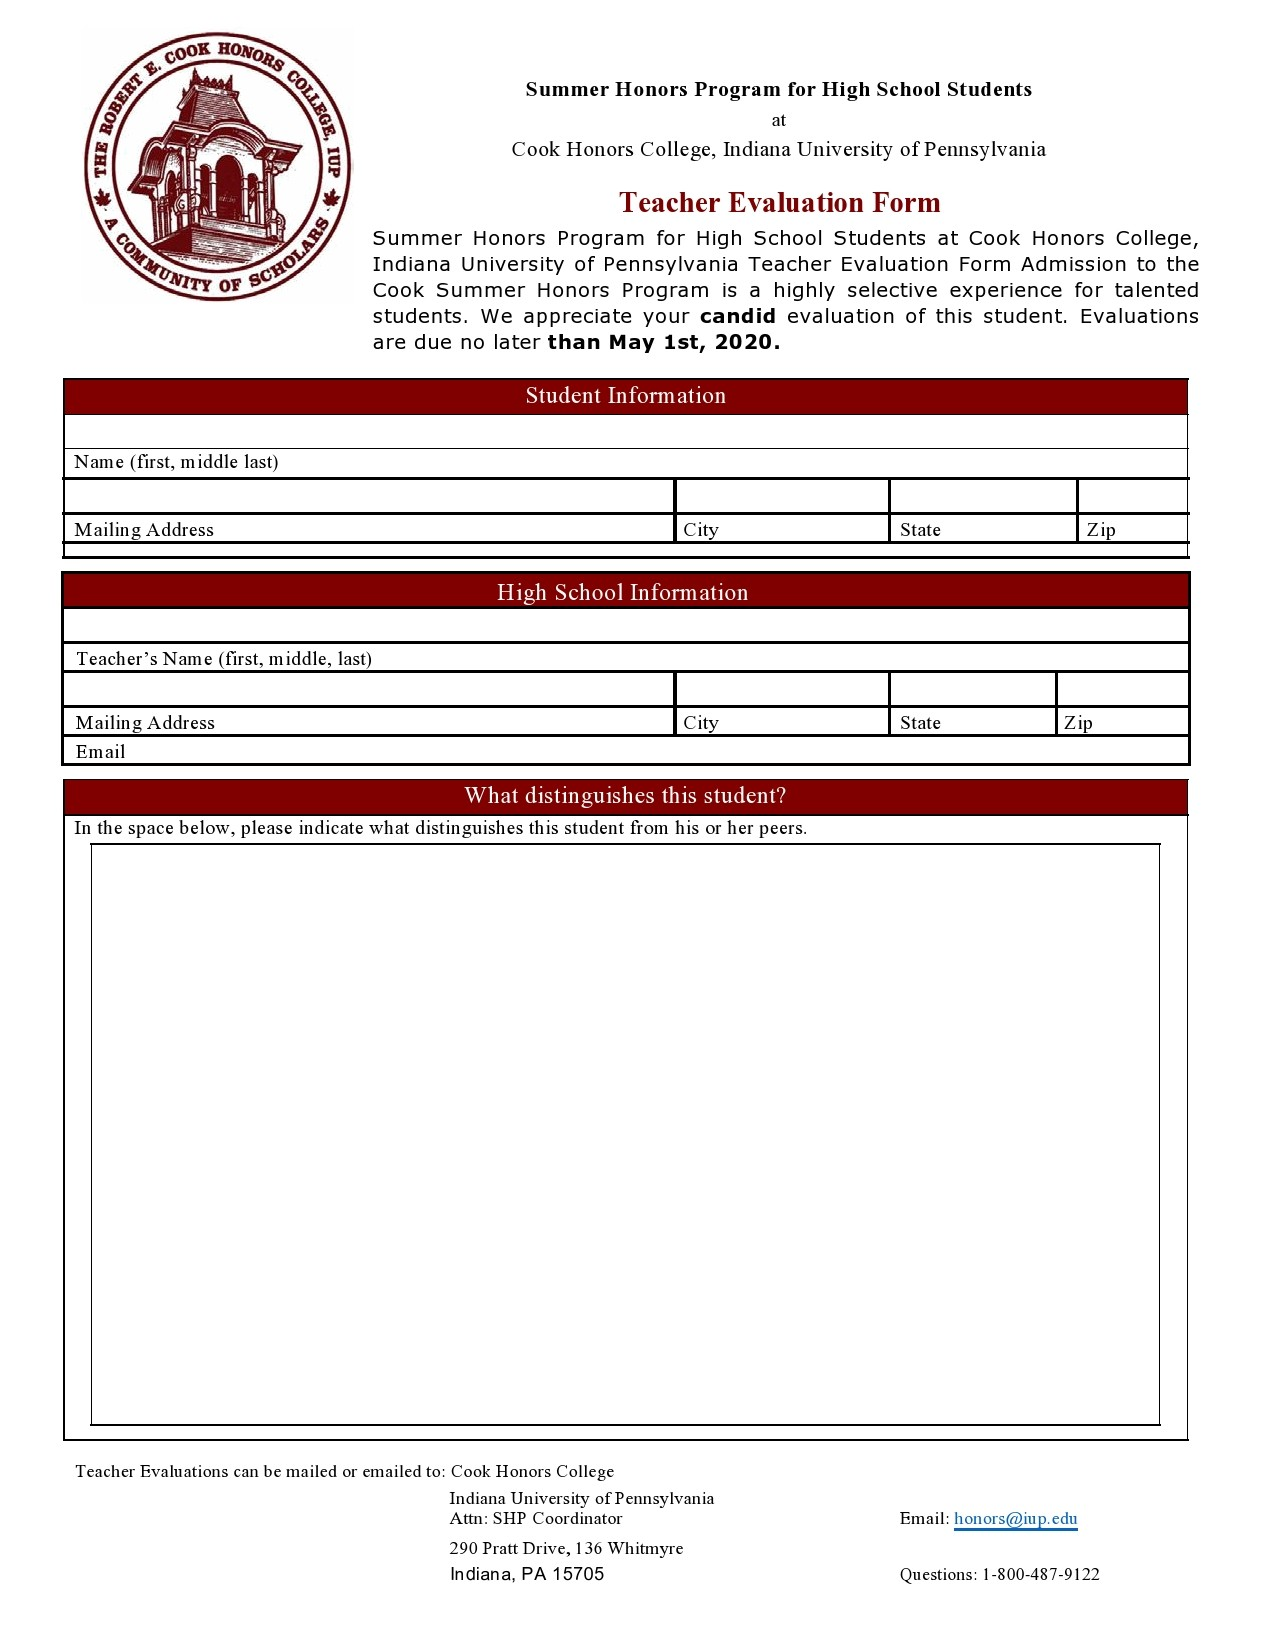 Free teacher evaluation form 35